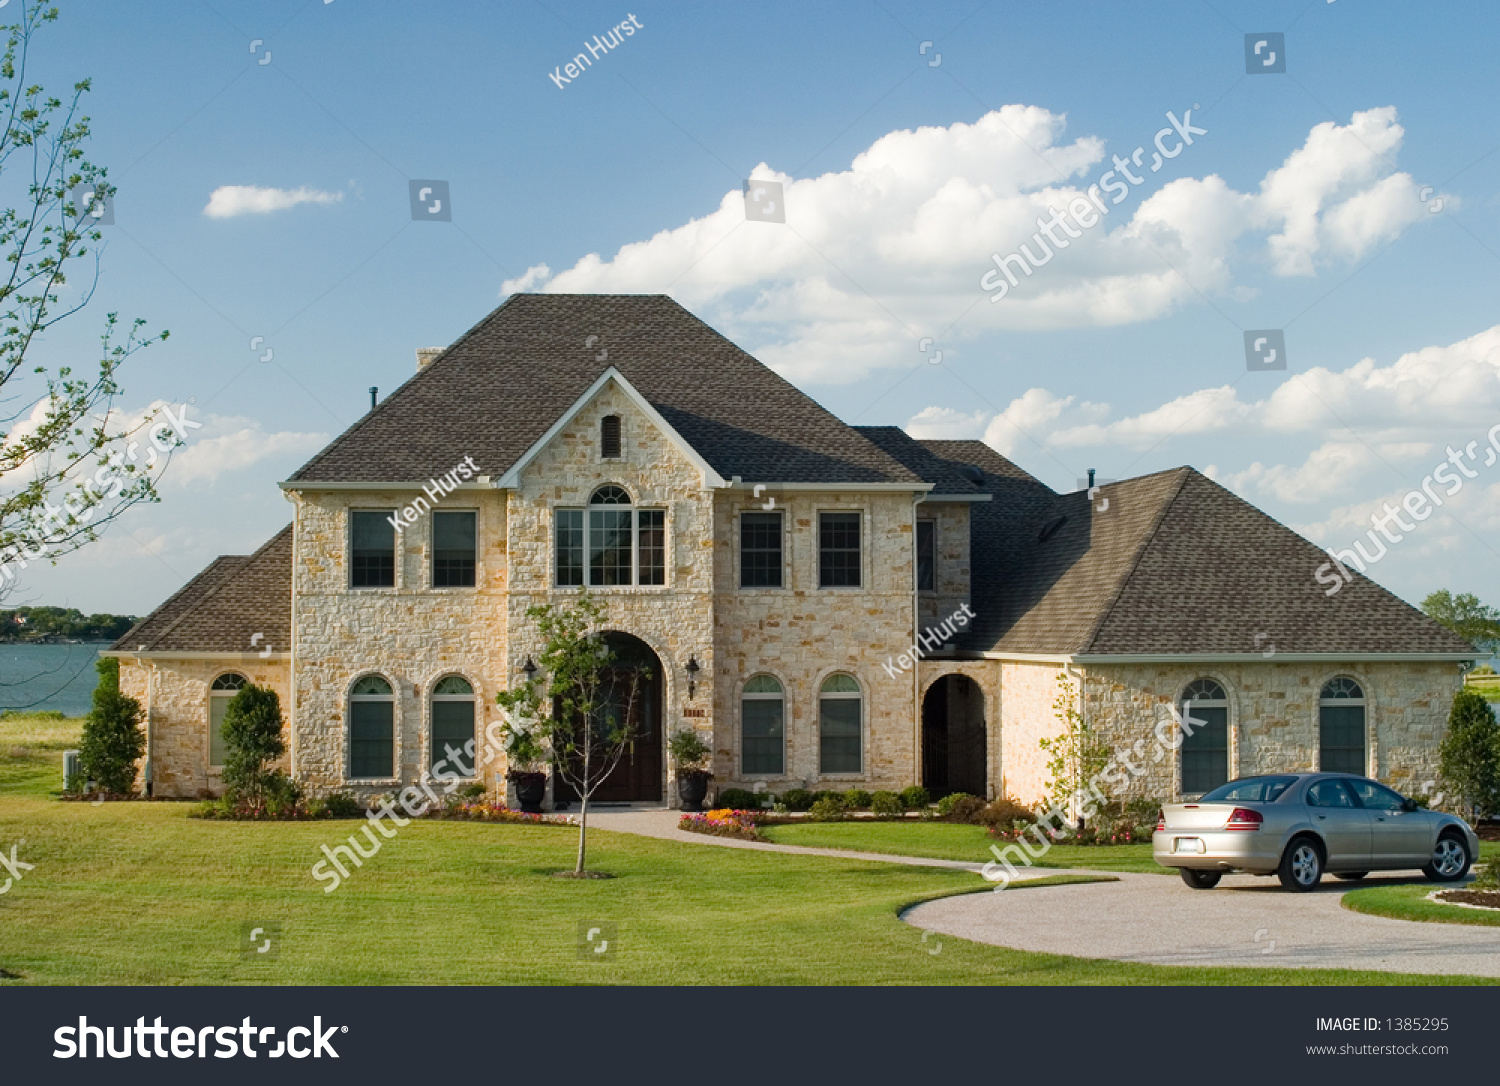 Very Large And Beautiful Stone And Brick House On A Small